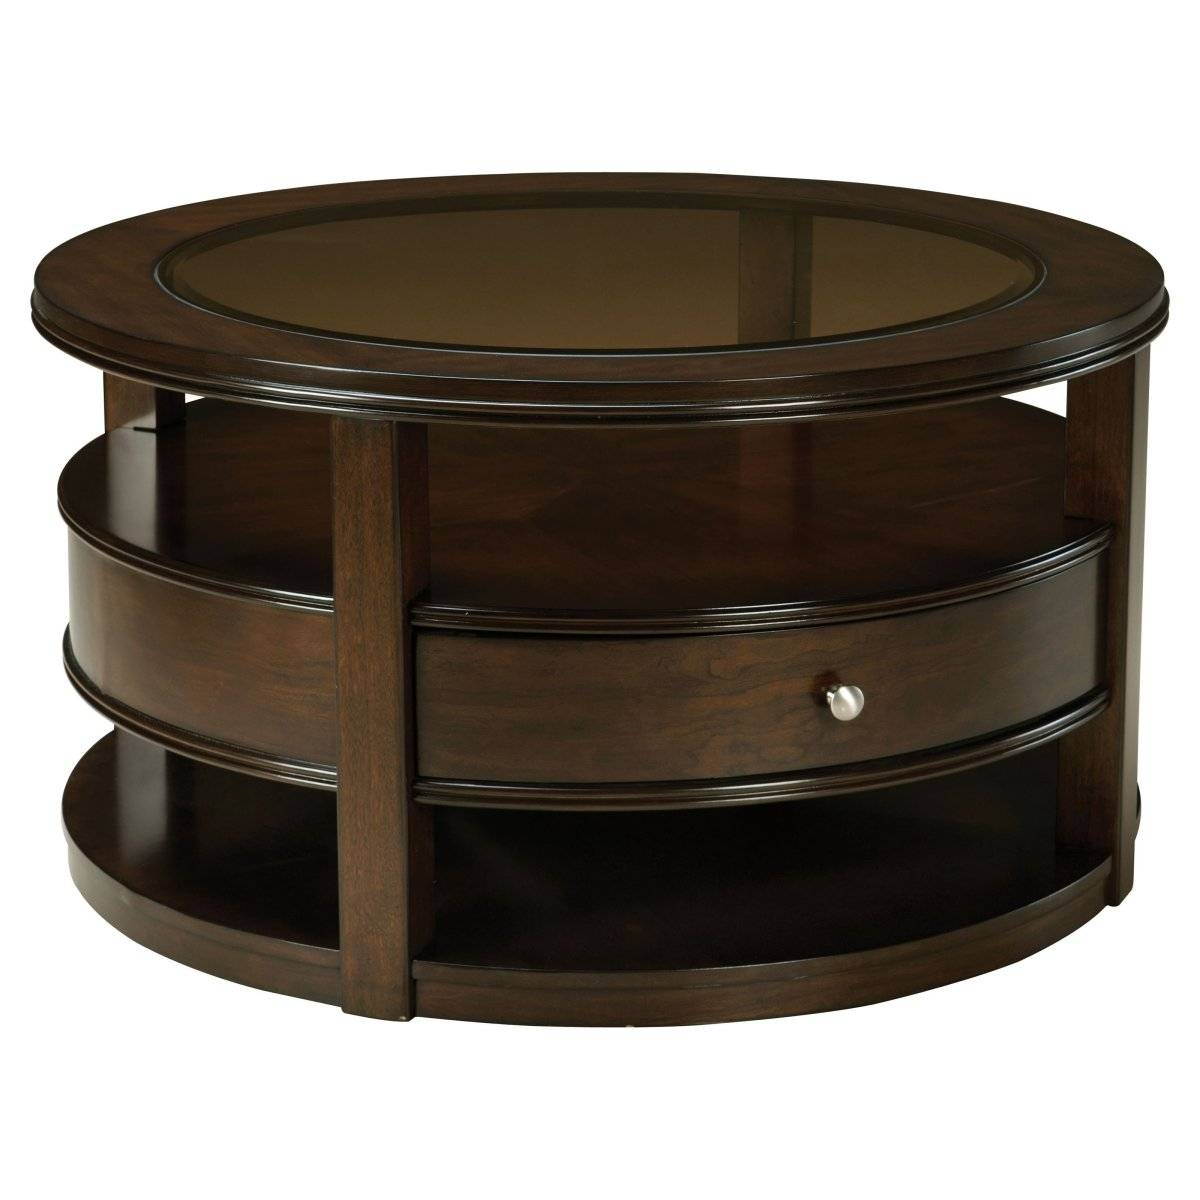 Round Coffee Tables With Storage | Homesfeed Inside Round Coffee Tables With Storages (Photo 3 of 30)